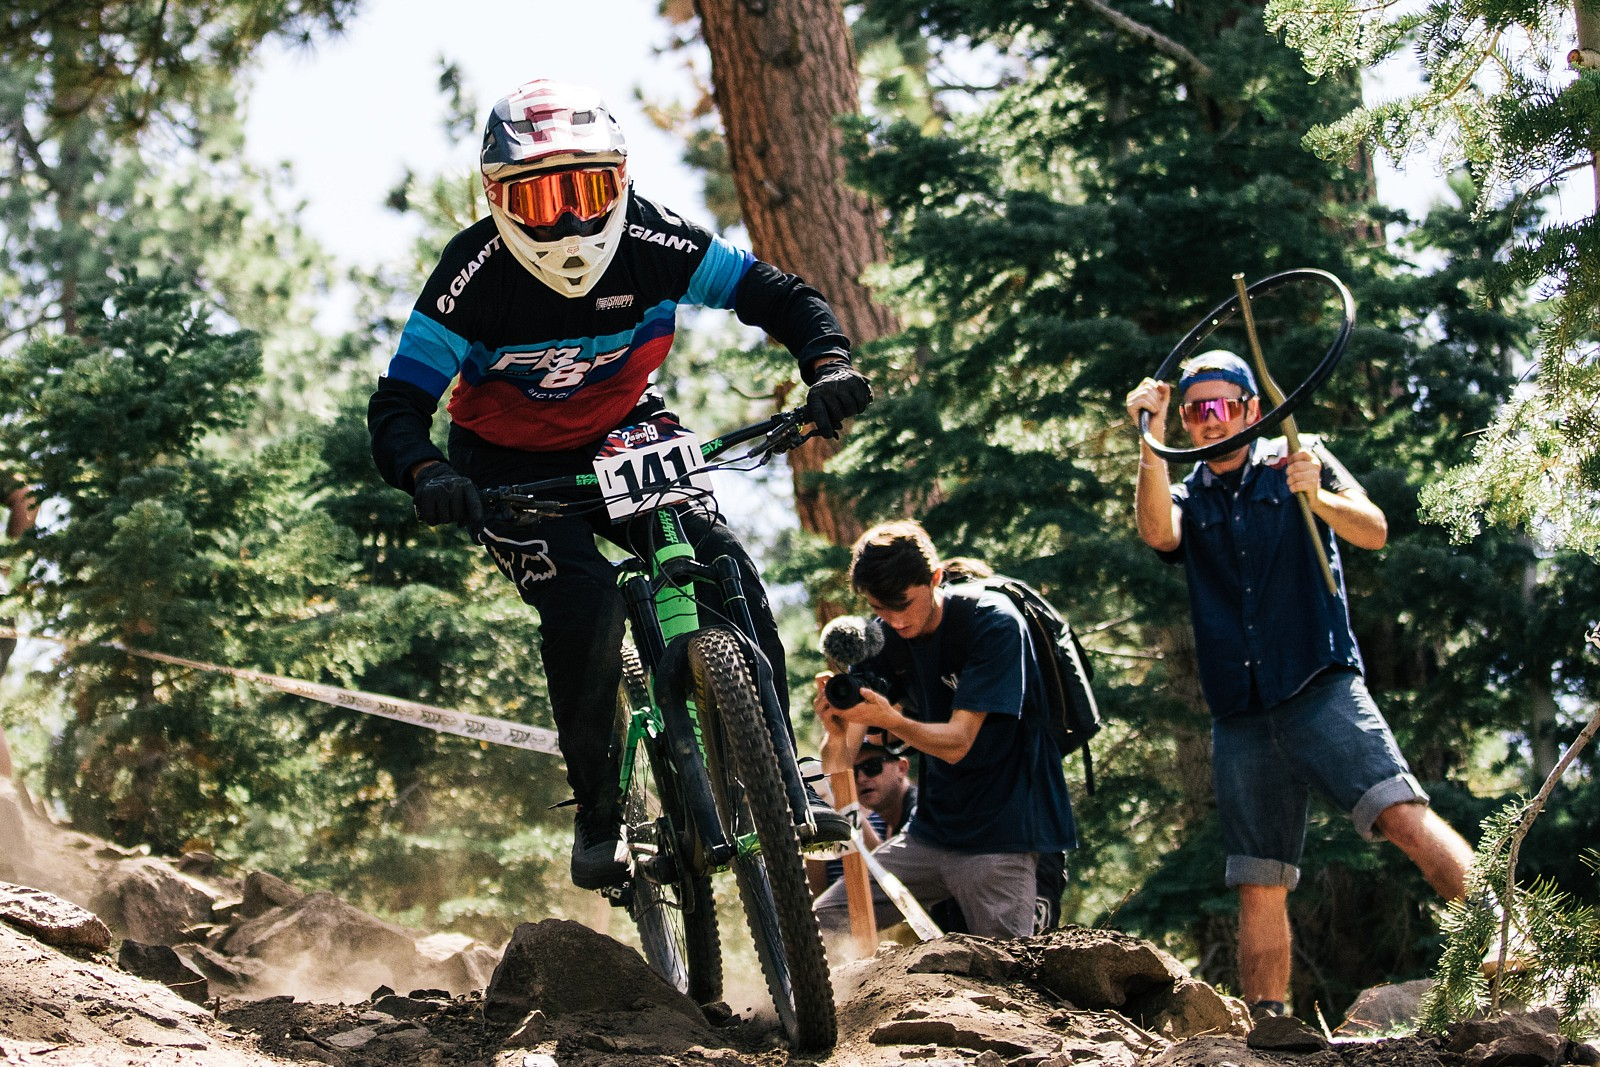 2019USOpenMTB DH yellow-6 - ALeedomPhotography - Mountain Biking Pictures - Vital MTB